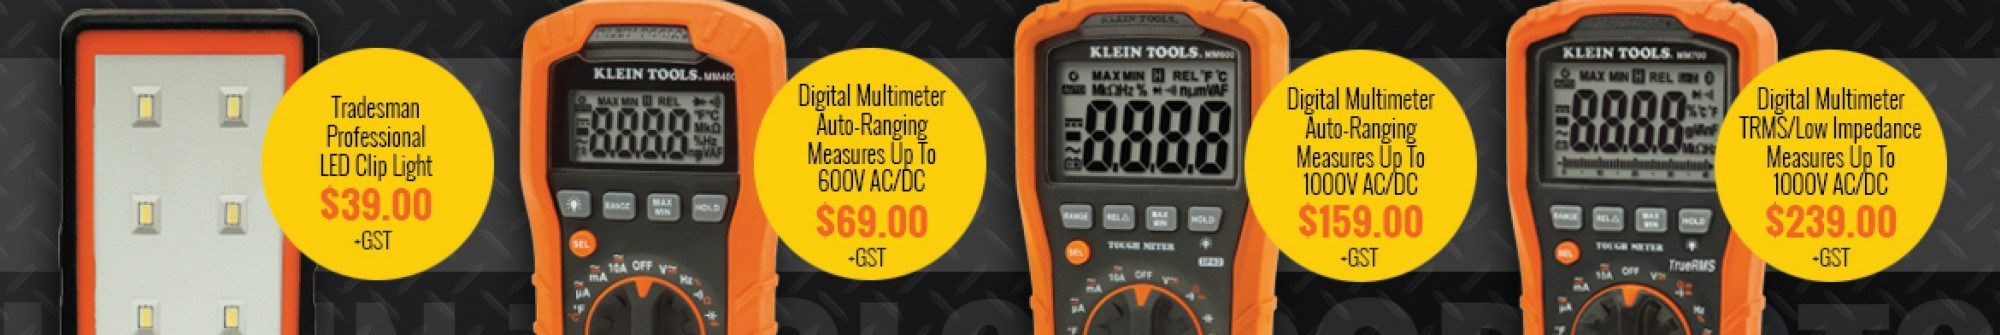 Klein Tools - Multimeters